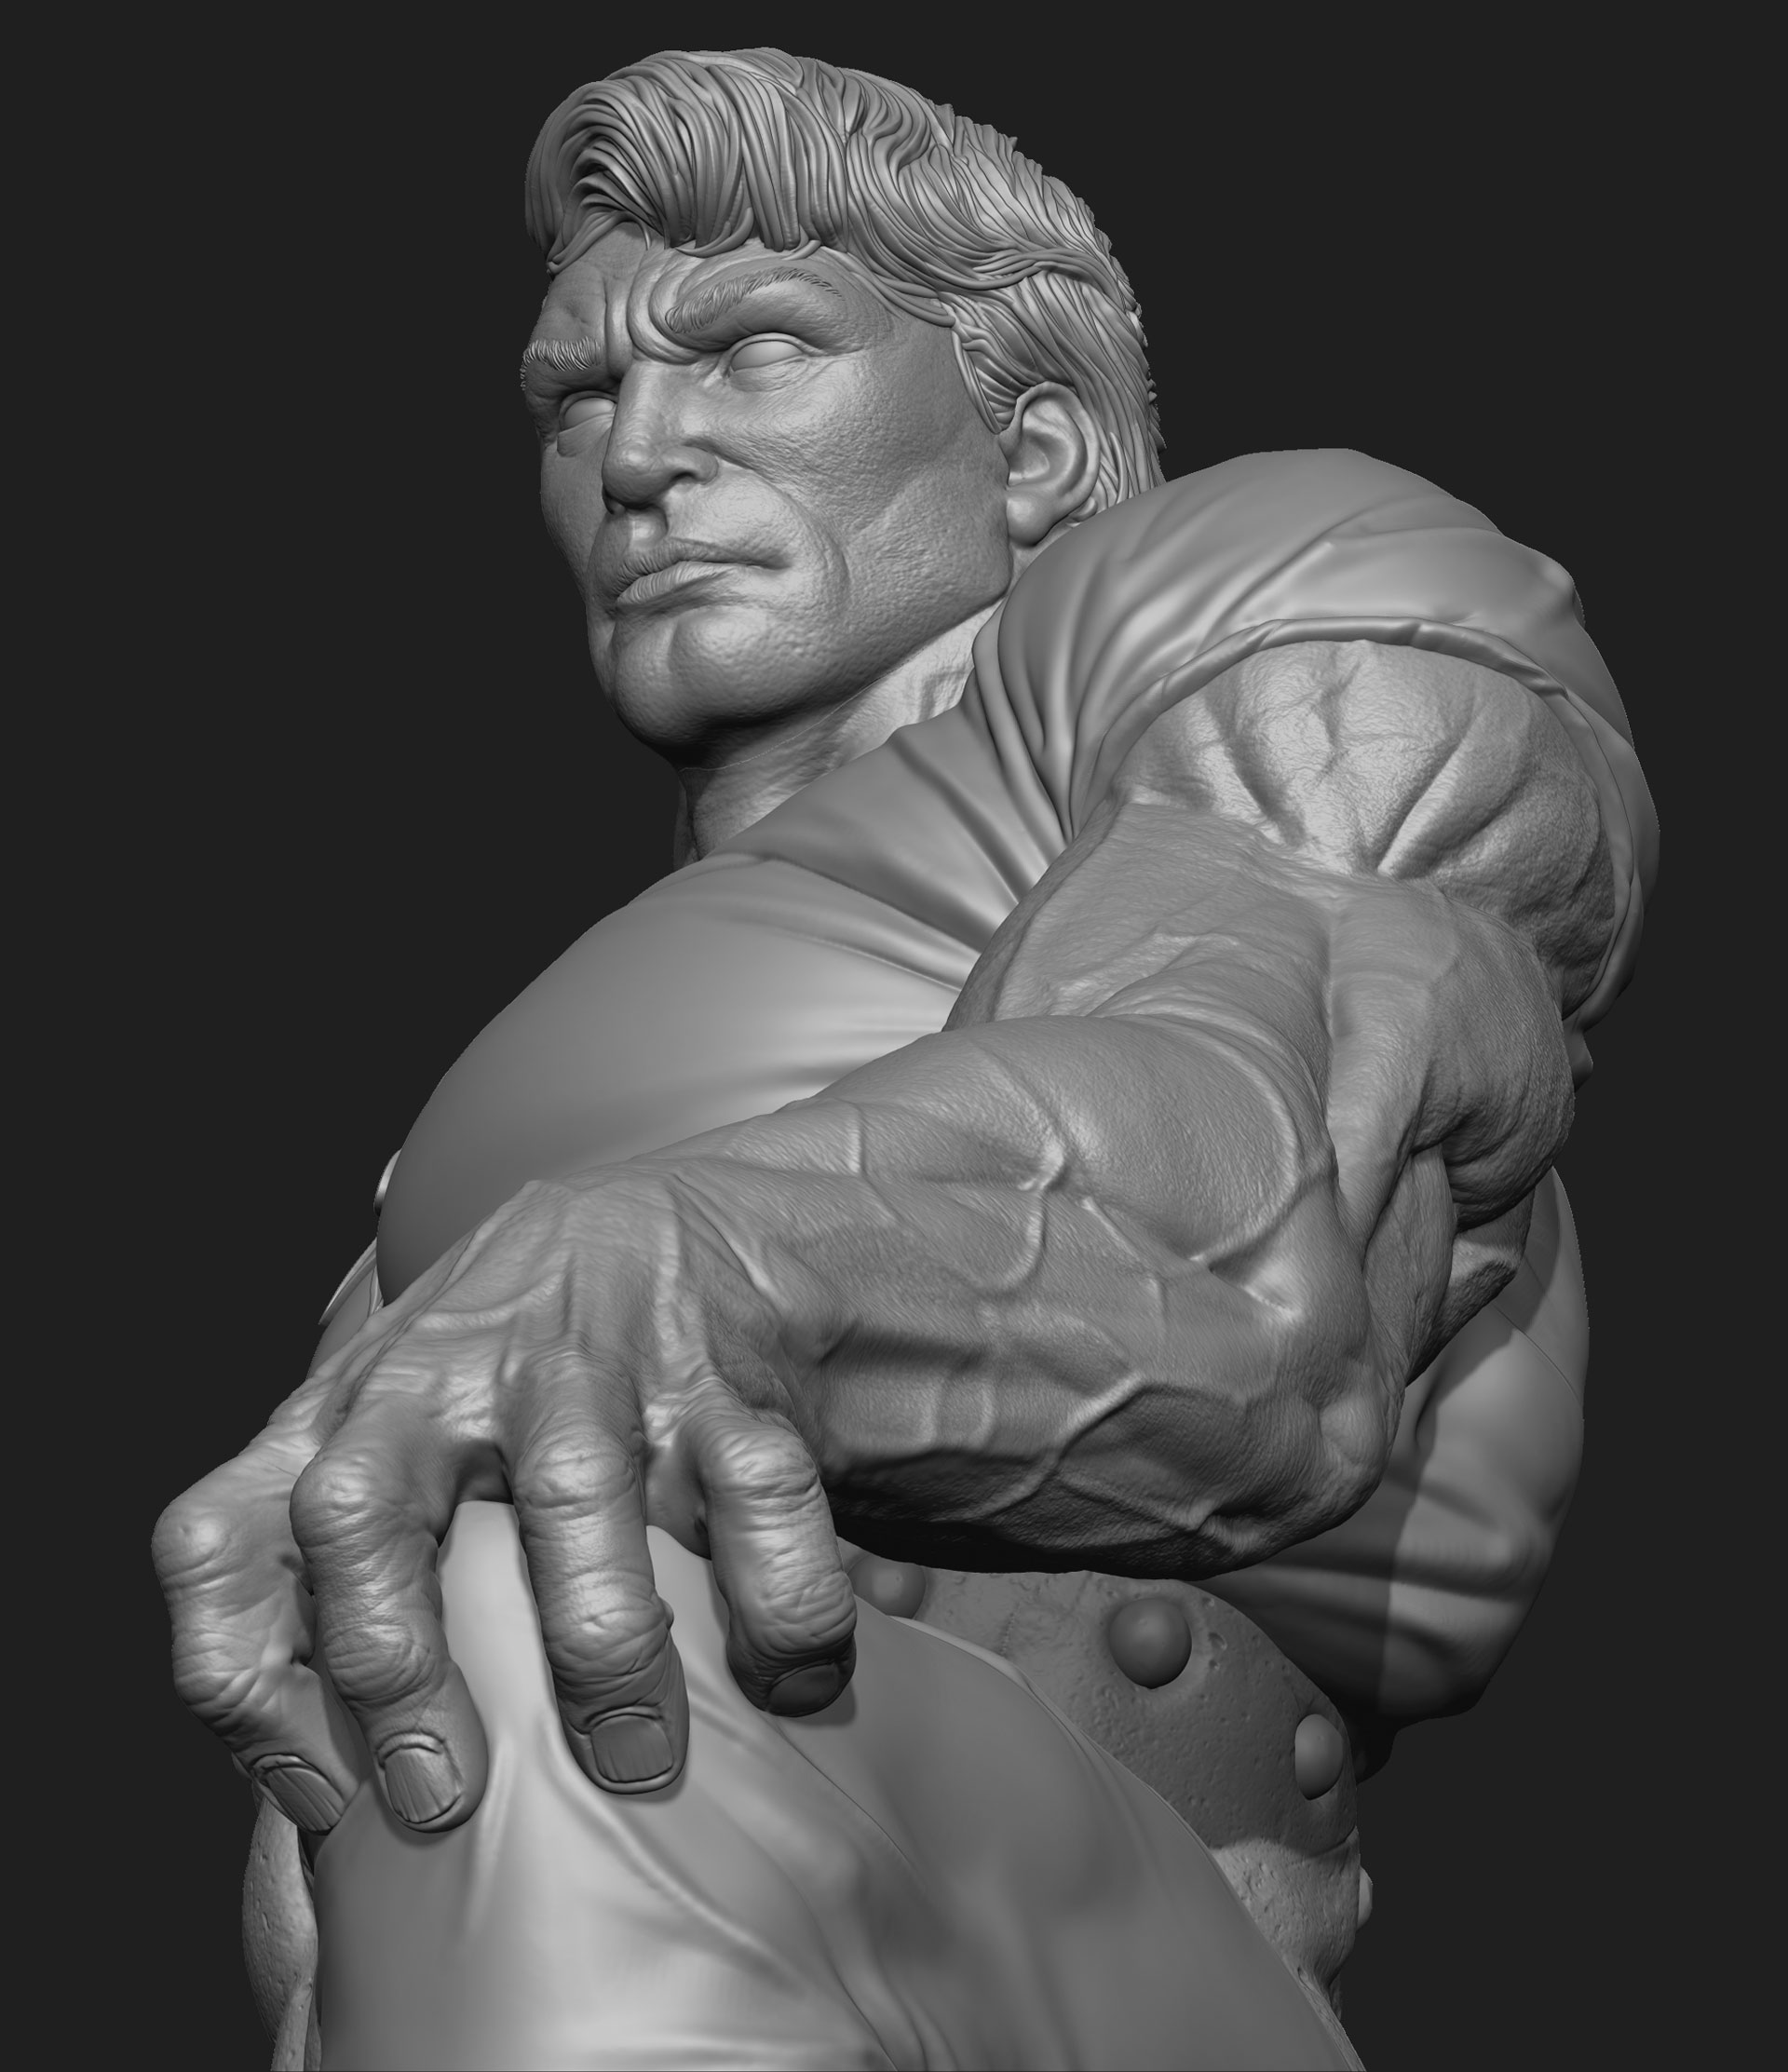 HyperionZbrushGray_12